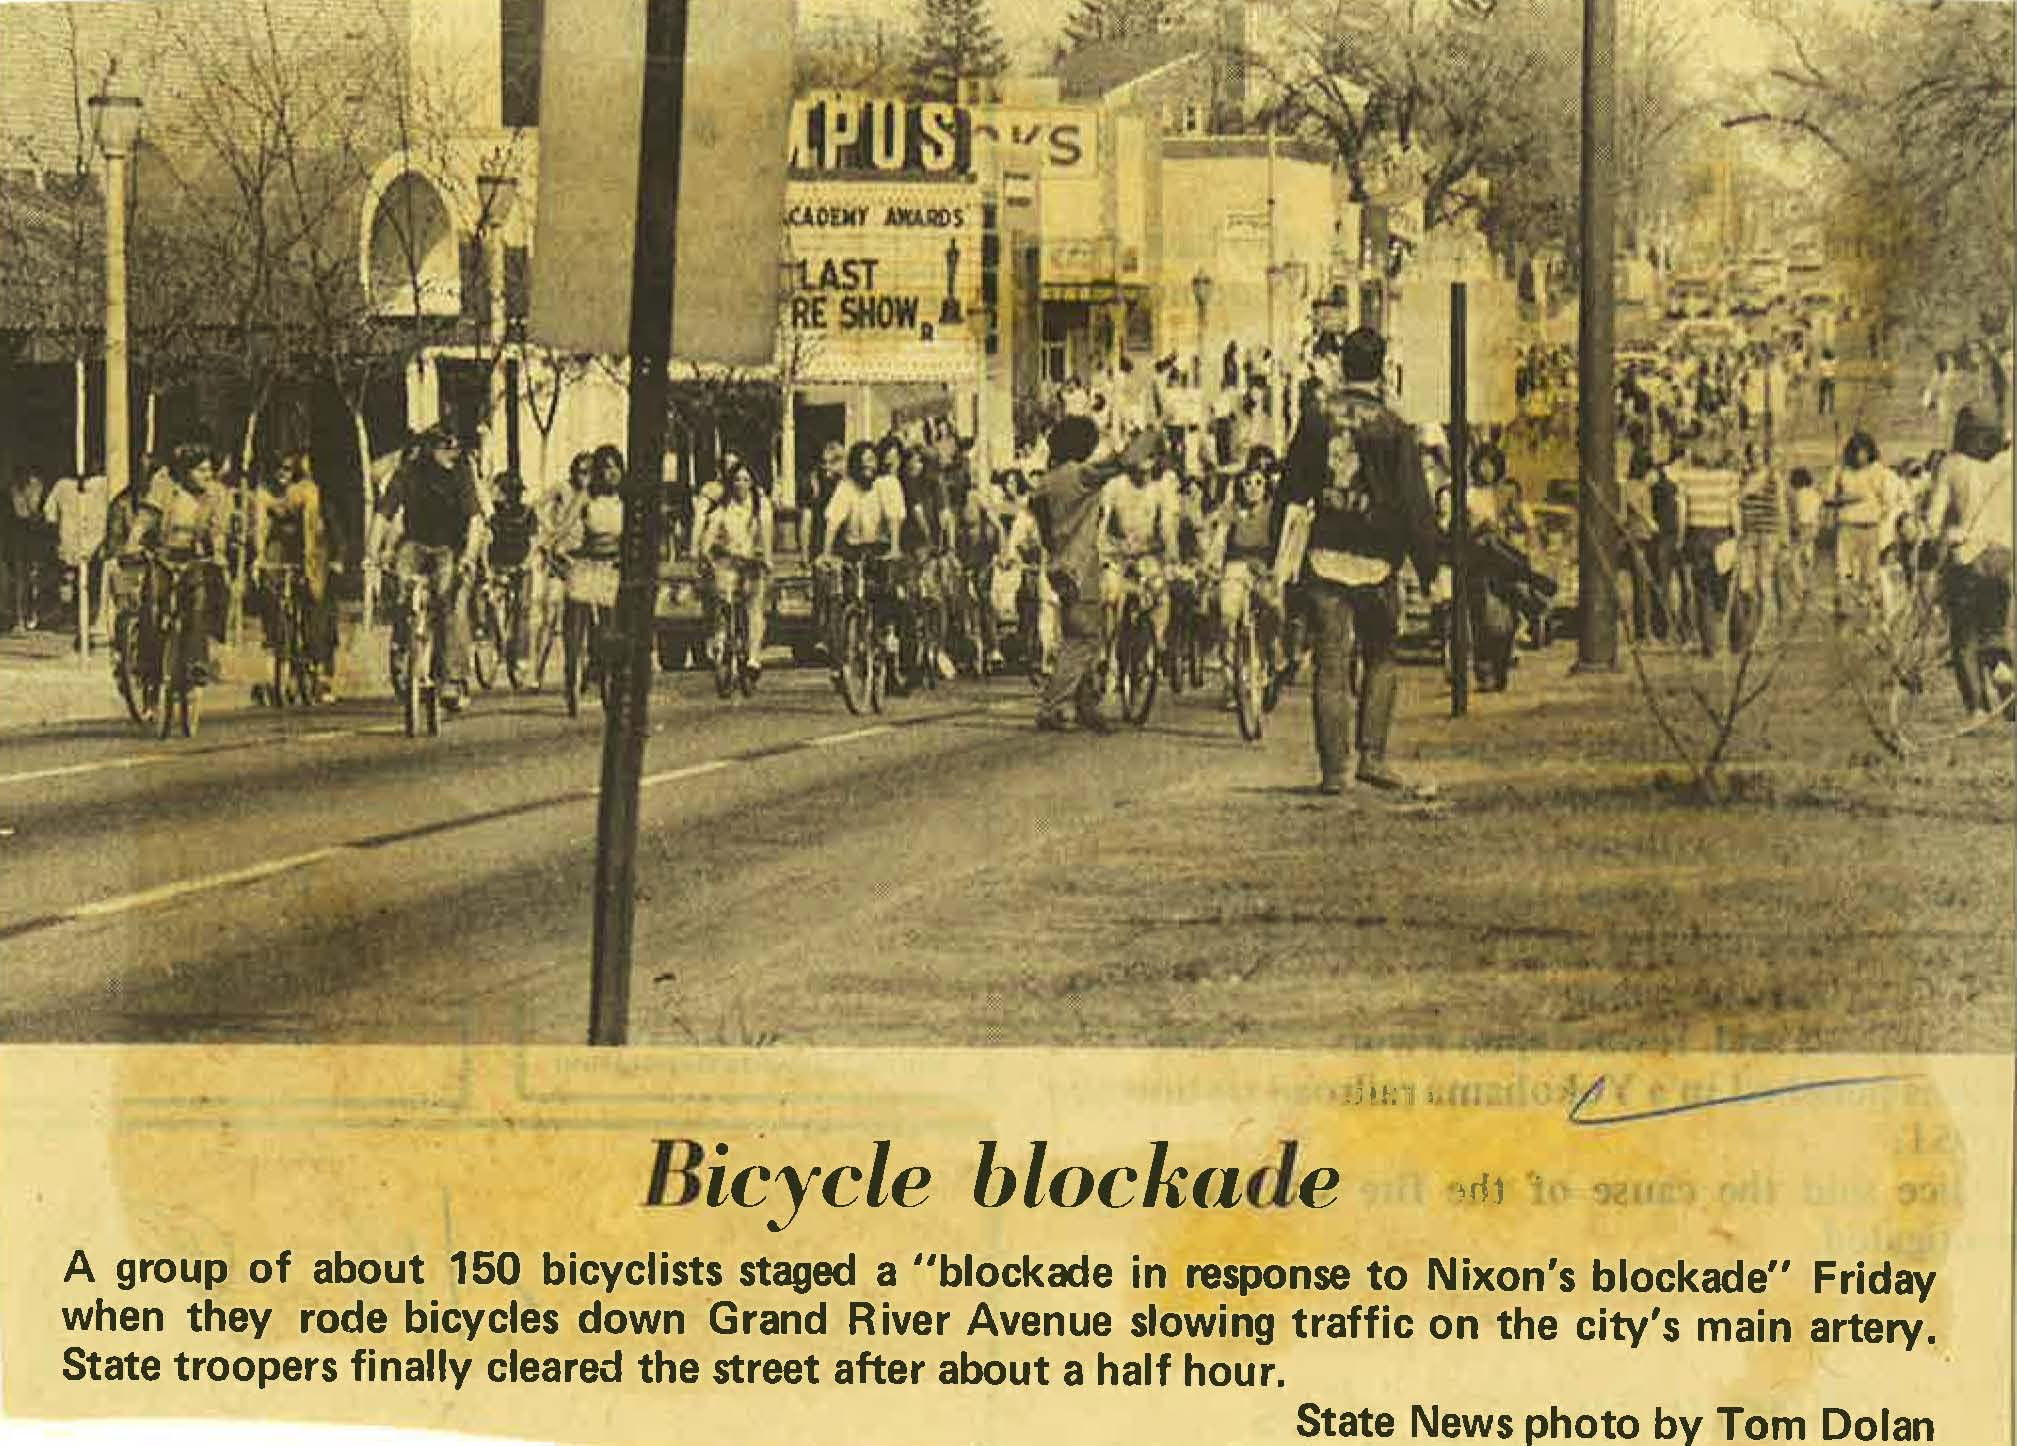 Bicycle Blockade on Grand River Avenue